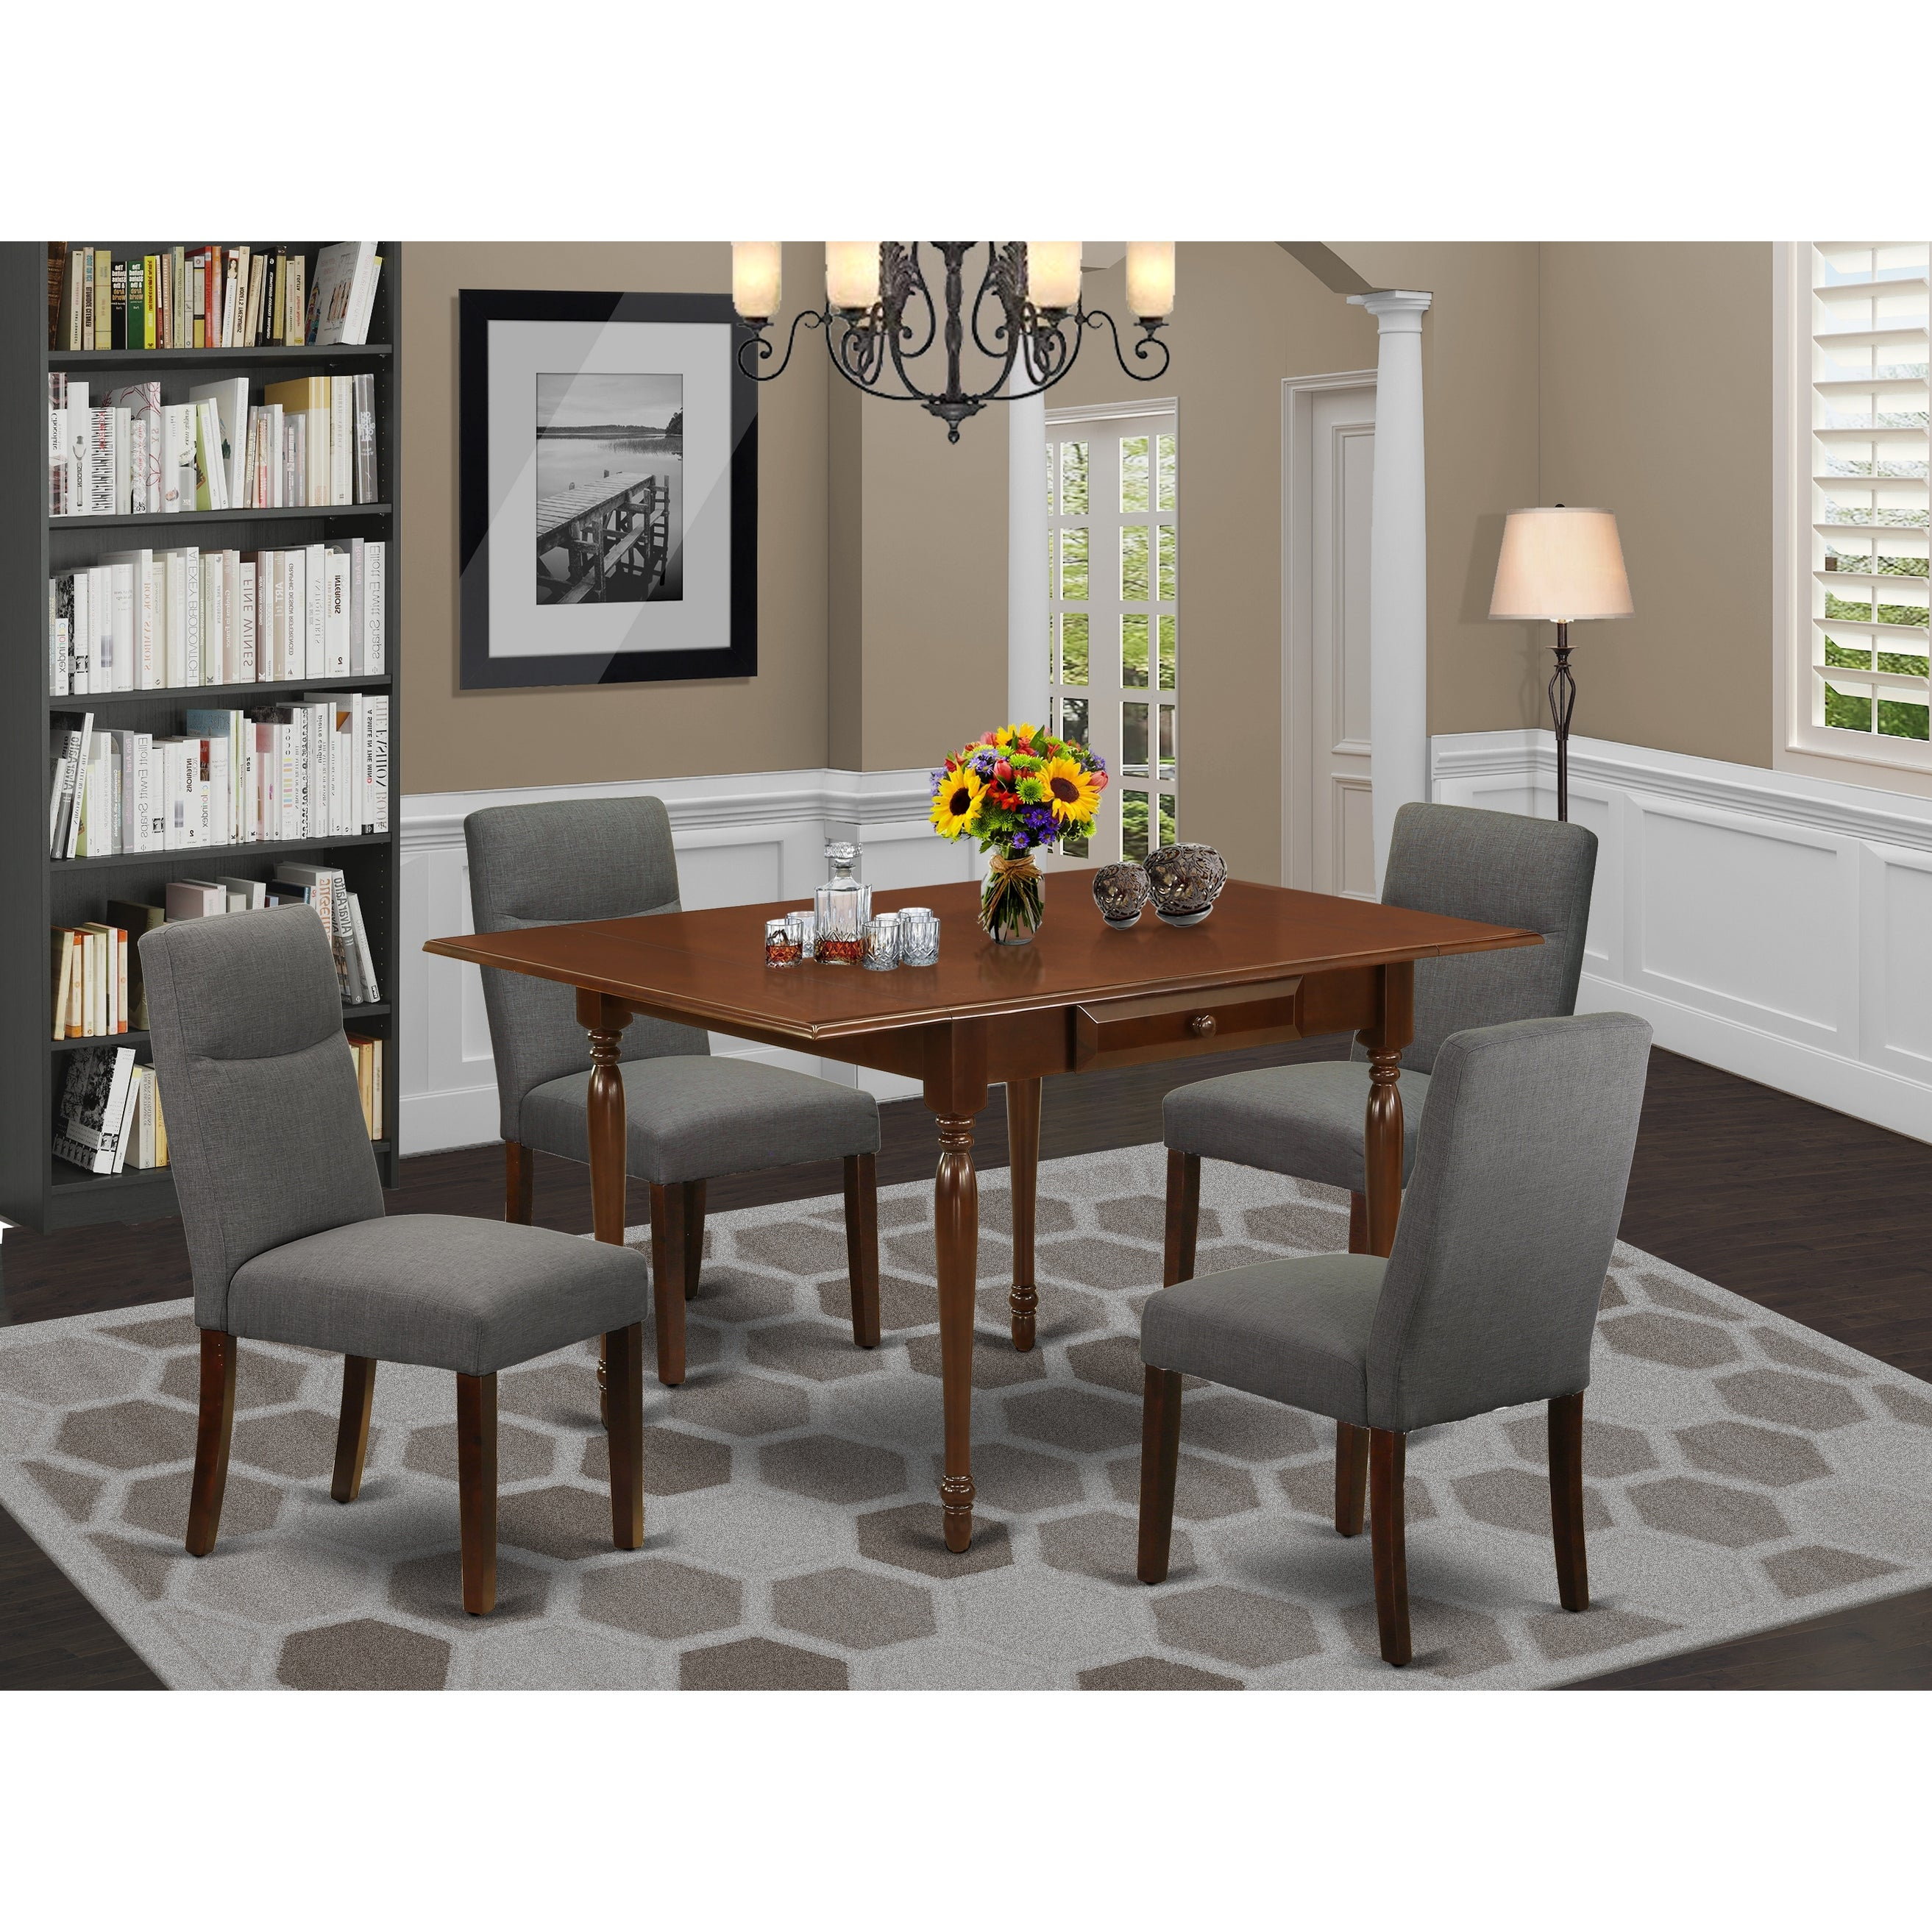 Shop Black Friday Deals On Small Kitchen Table And Upholstered Dining Chairs With Shitake Color Linen Fabric Upholstery Seat Number Of Chairs Option Overstock 32448740